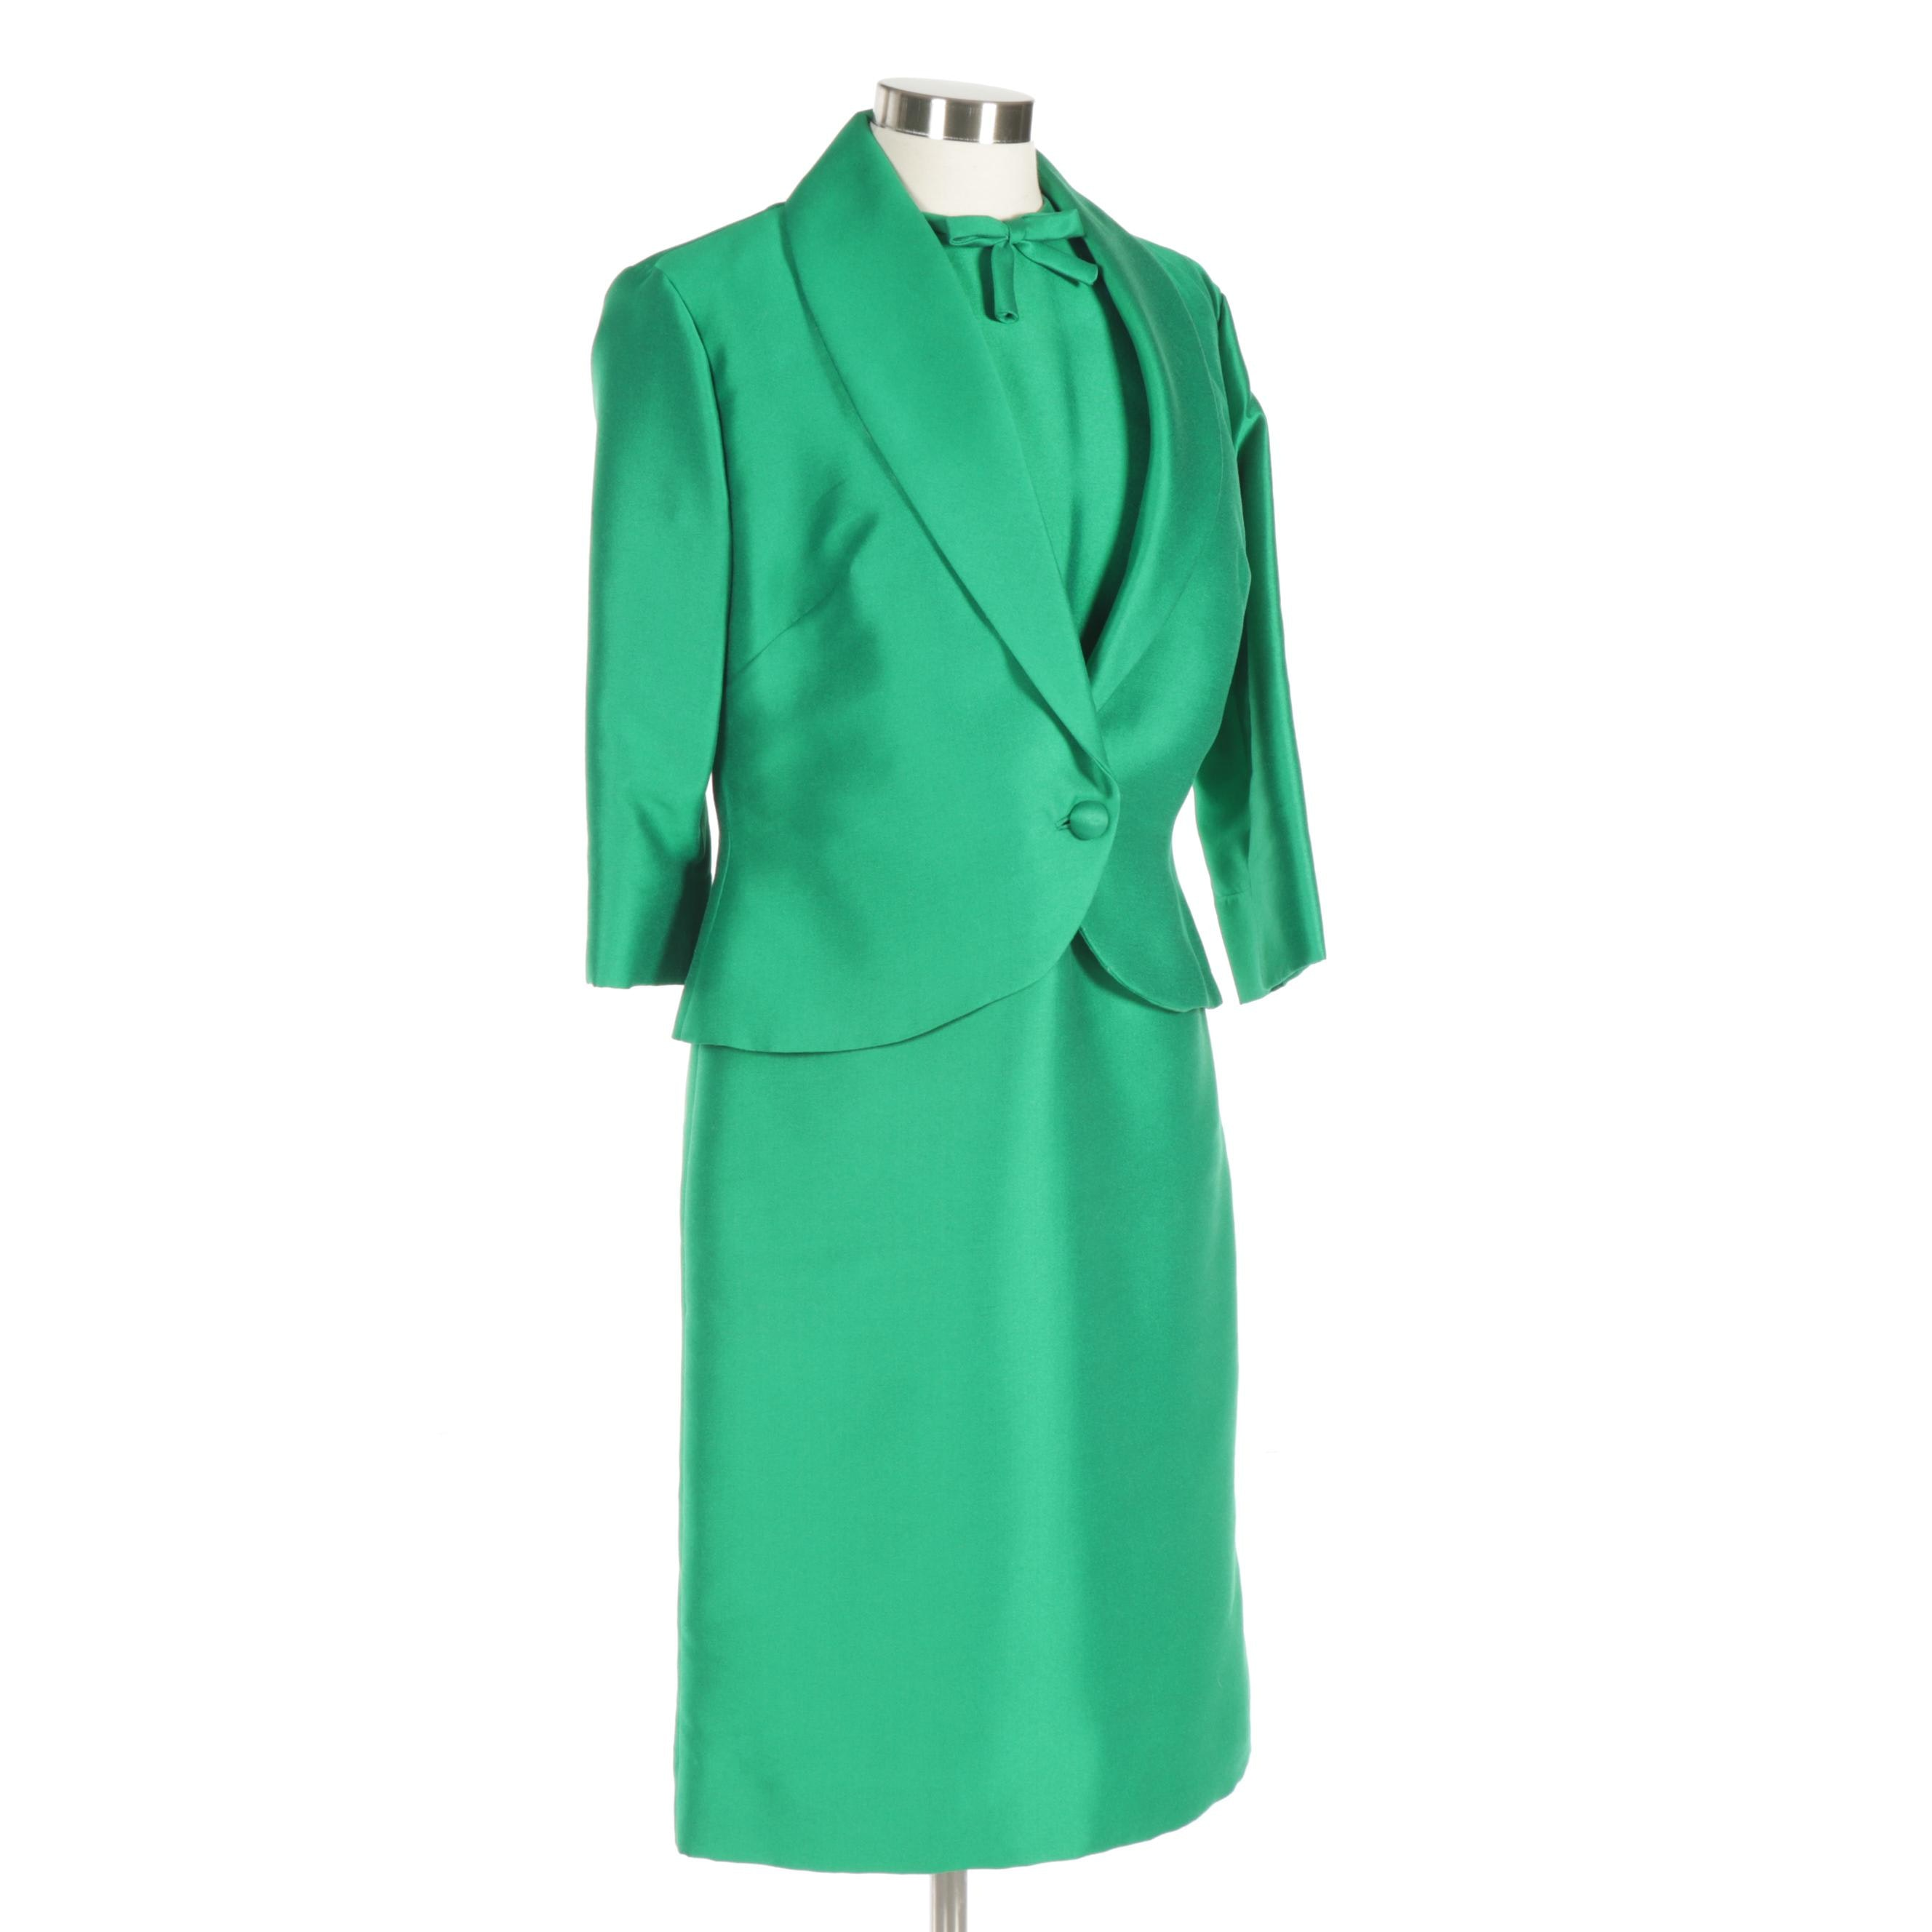 Women's Emerald Green Silk Jacket and Dress, 1960s Vintage